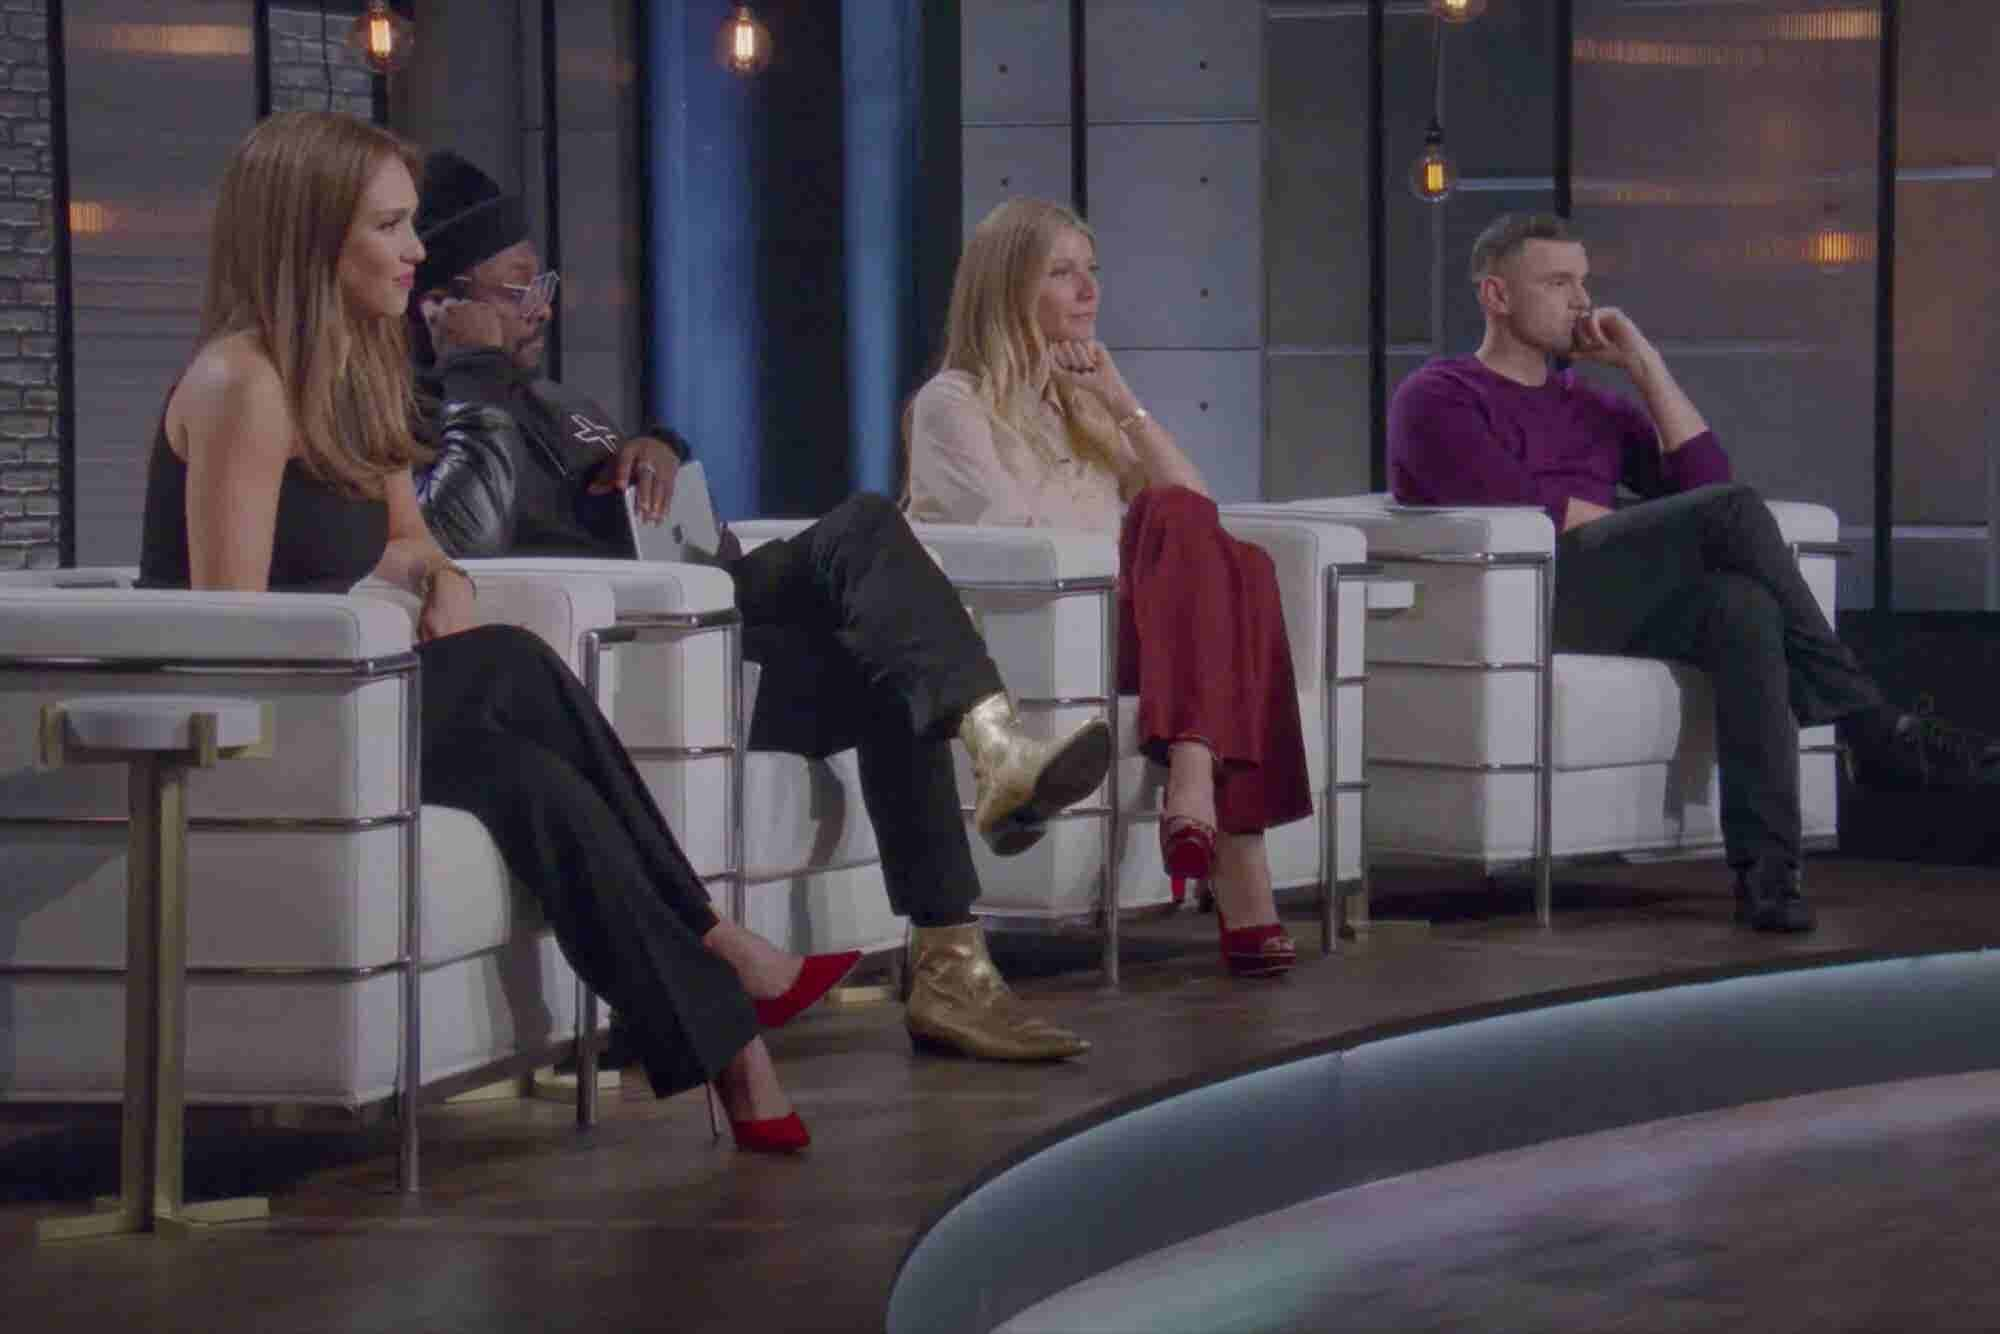 Apple Presents a Pretty Good Take on 'Shark Tank' With Its First Foray...